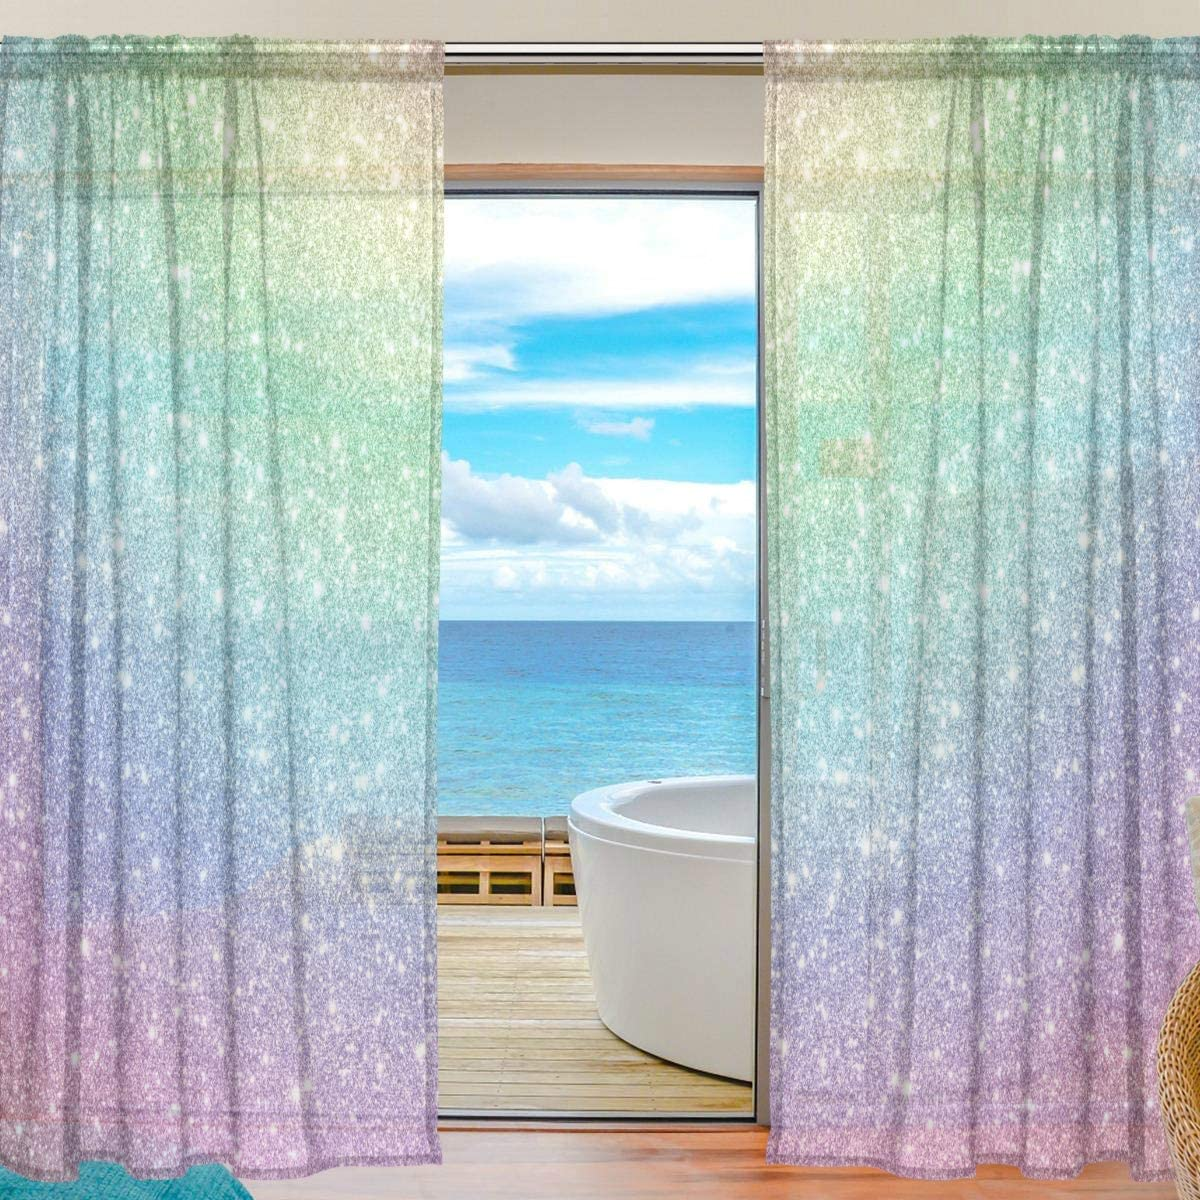 AGONA Beautiful Shiny Multicolored Sequins Sheer Curtains Window Voile Panels Drapes Tulle Curtains Semi Sheer Curtains 54 by 84 Inches Long for Living Room Kids Room Nursery 2 Panels